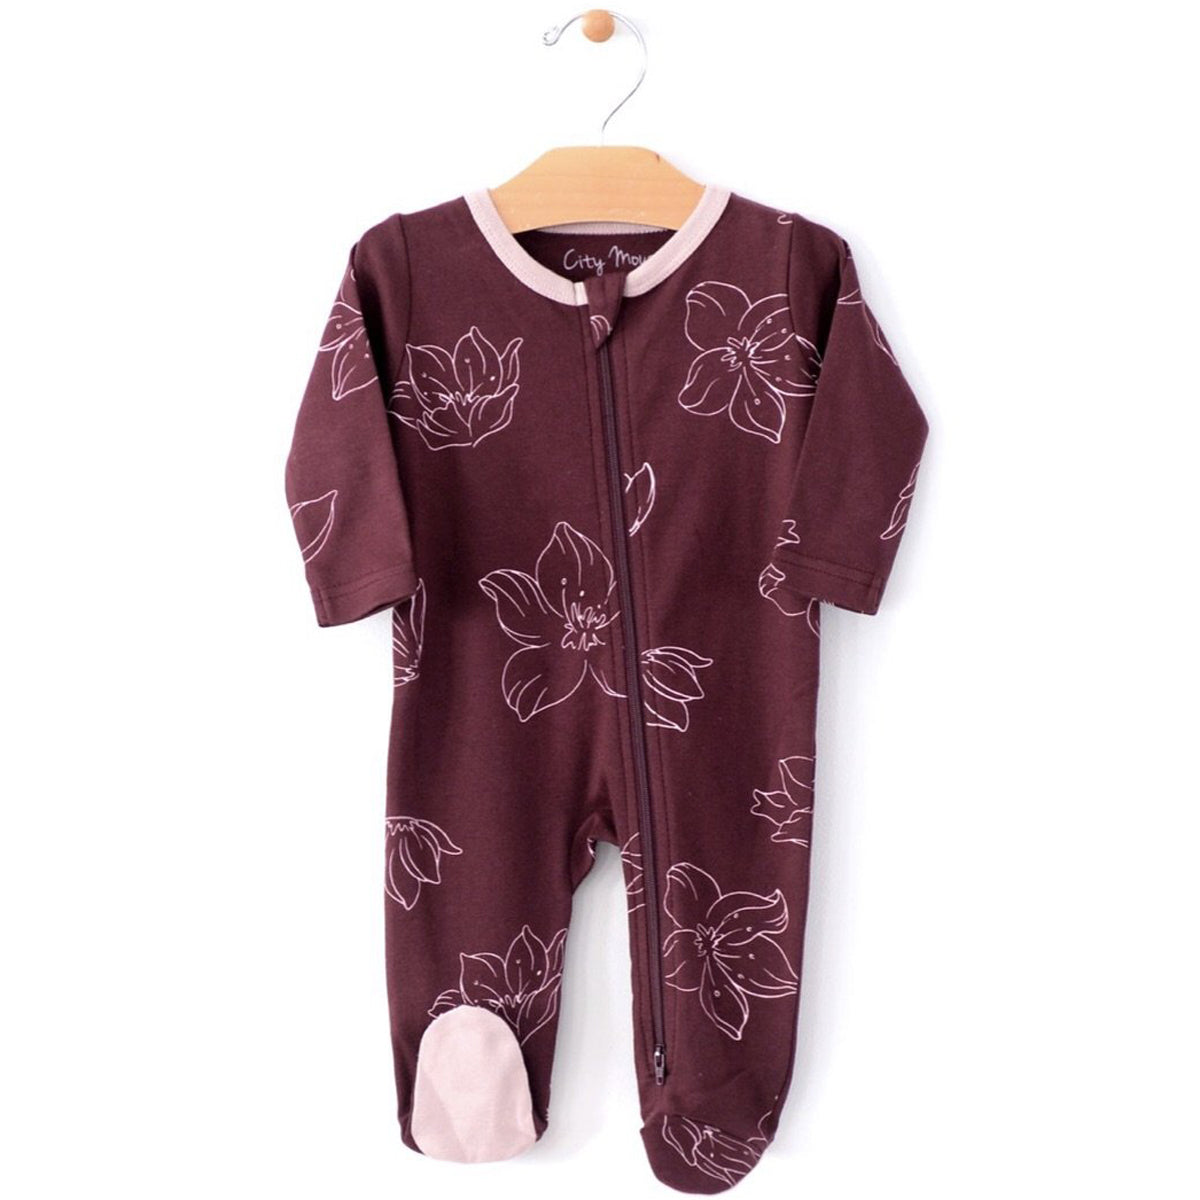 3f7cb1be1 City Mouse Organic Footed Romper w/ 2-Way Zipper Hellebore - Mini ...